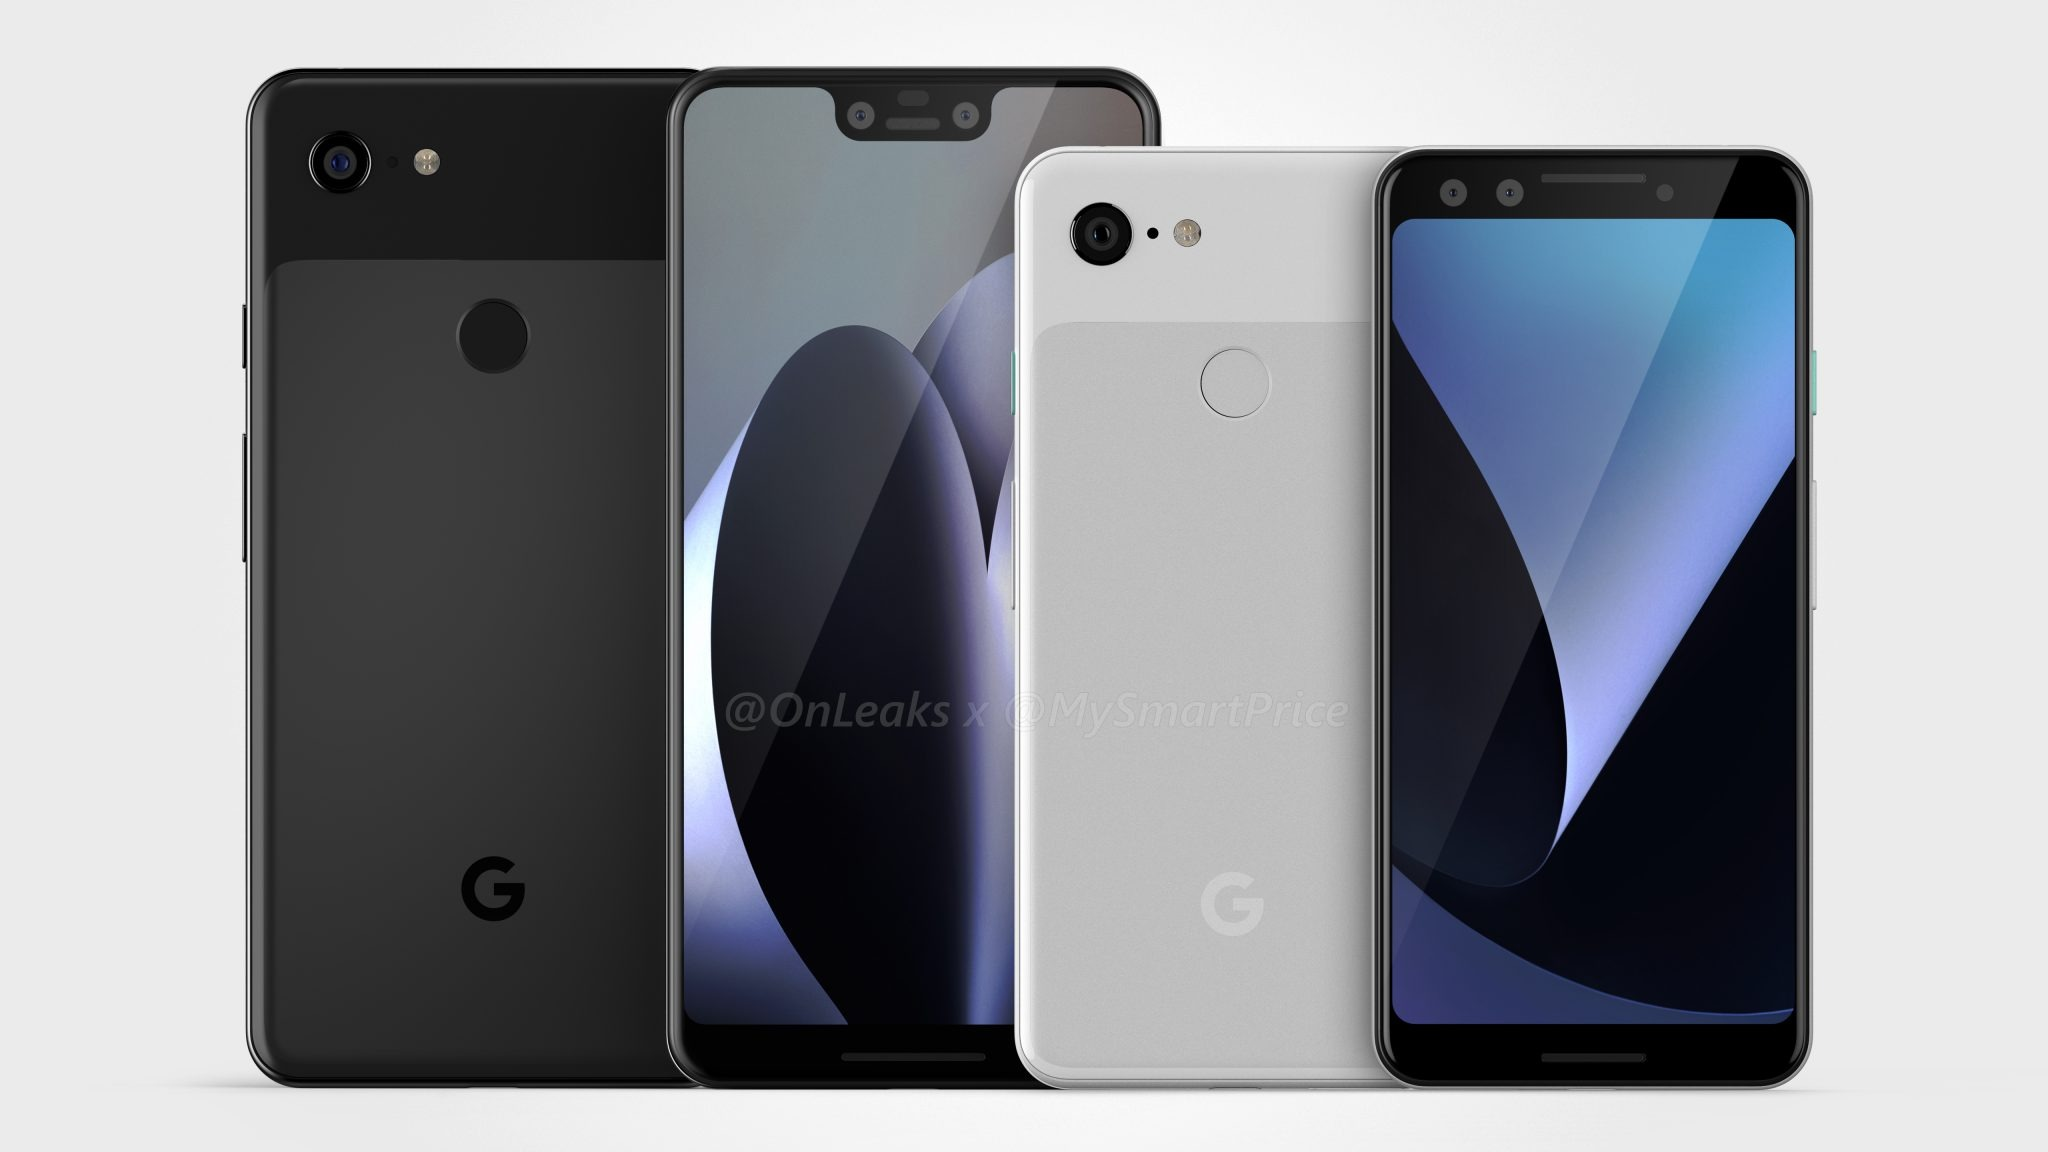 Google Pixel 3 & Pixel 3 XL - Here's our best look at the design 1